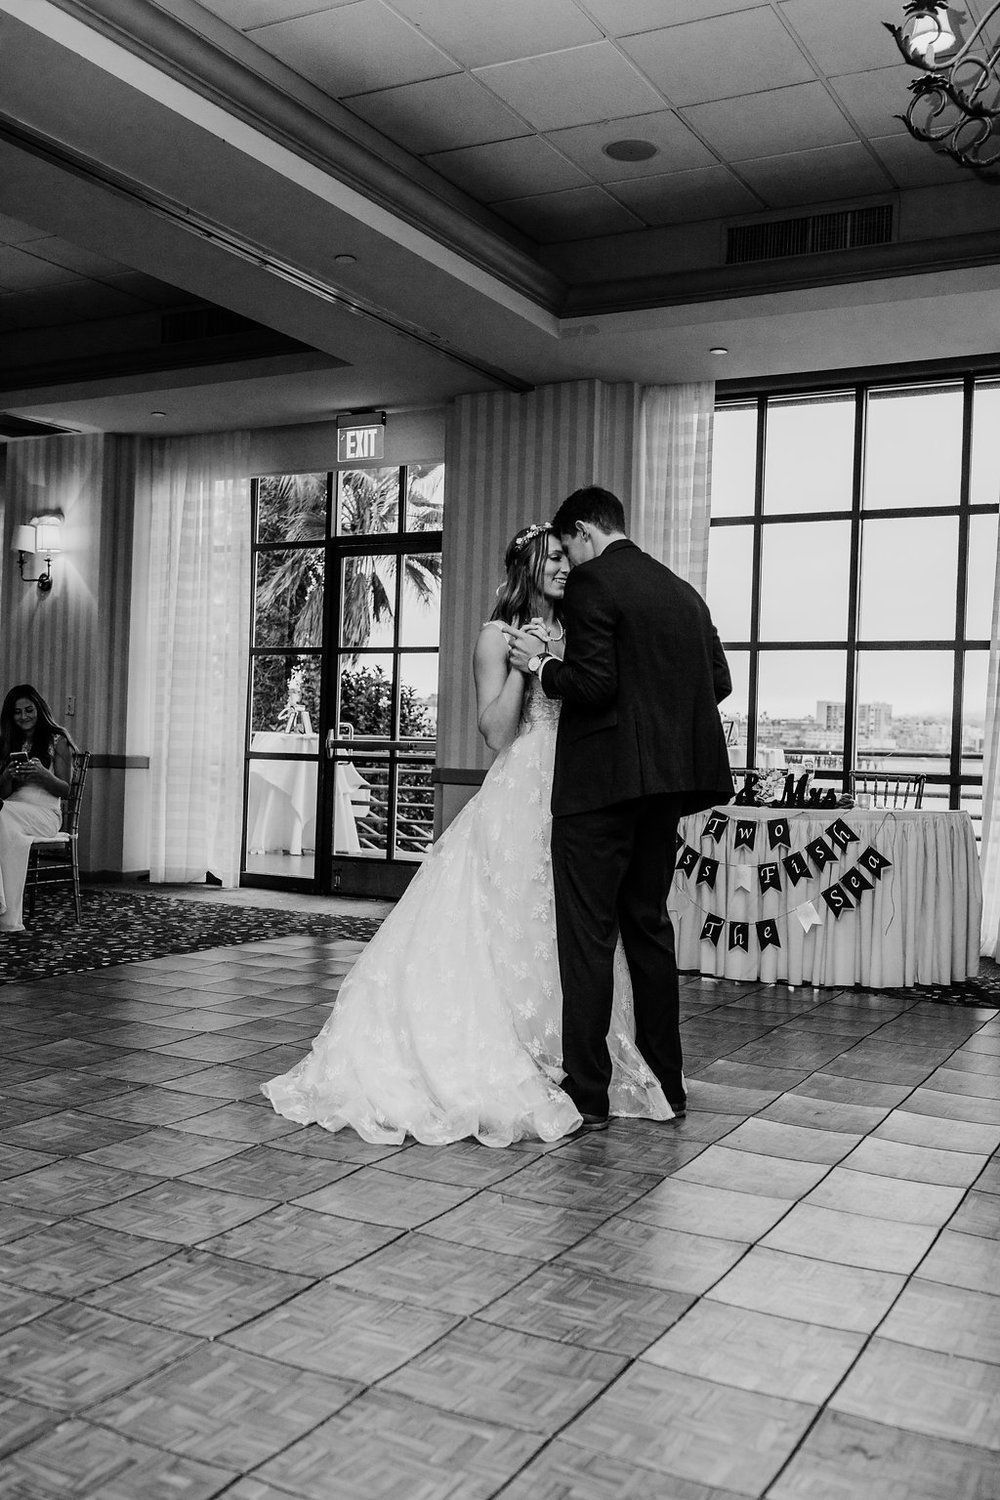 black and white wedding day photography first dance as bride and groom los angeles california wedding